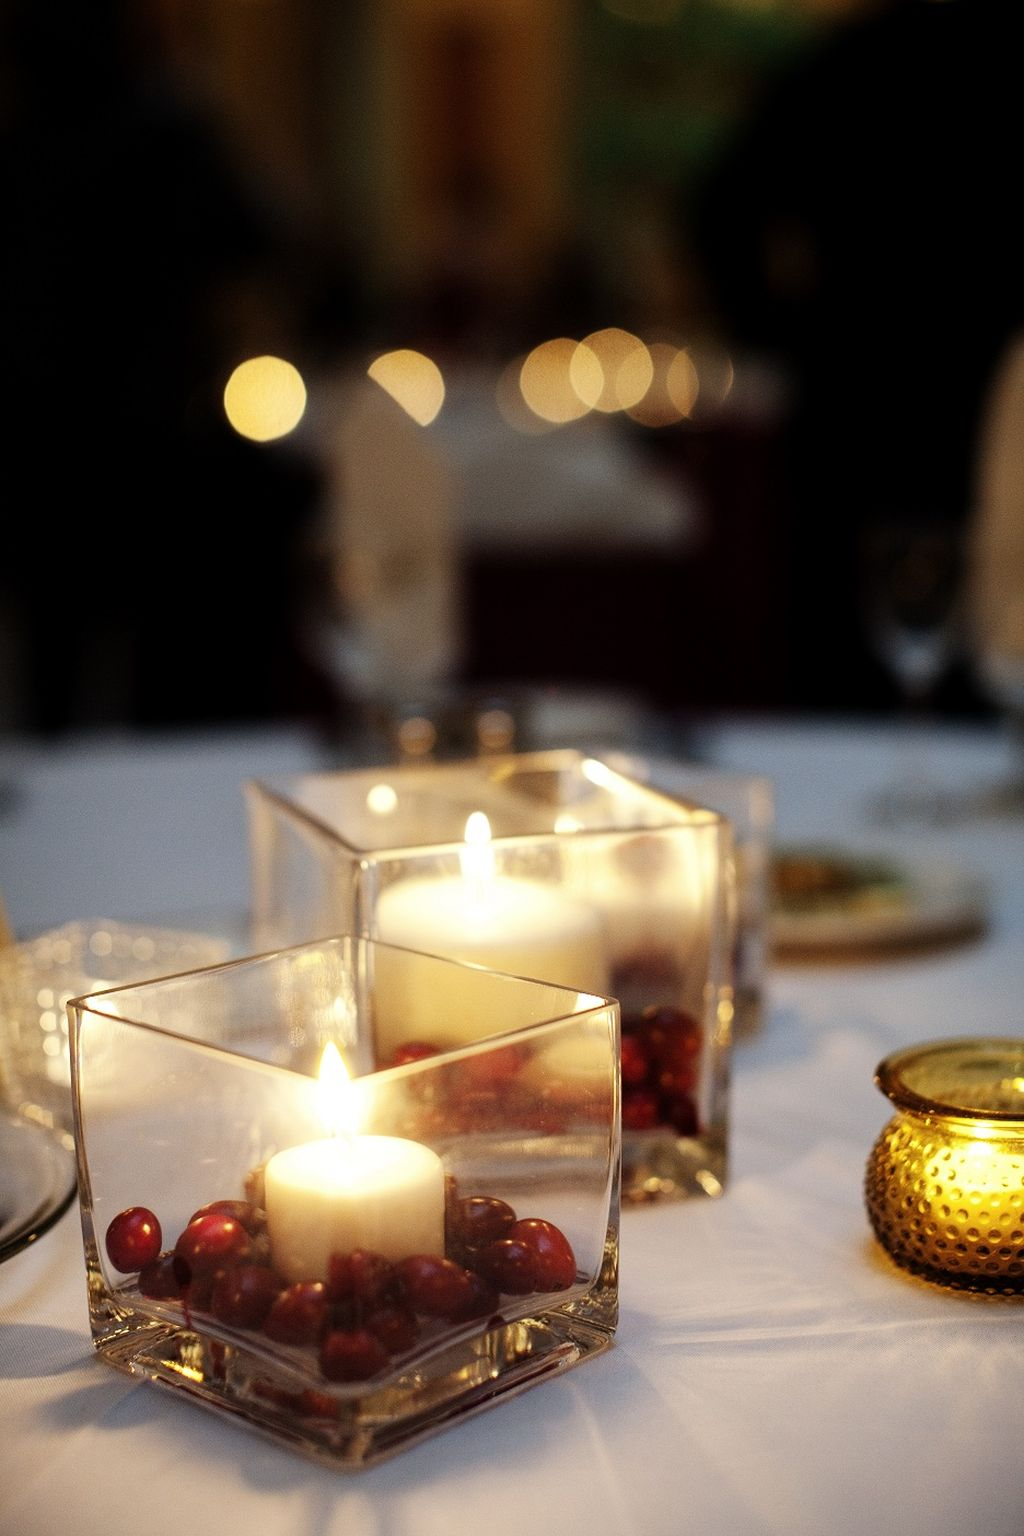 Inspiring Modern Rustic Christmas Centerpieces Ideas With Candles 75